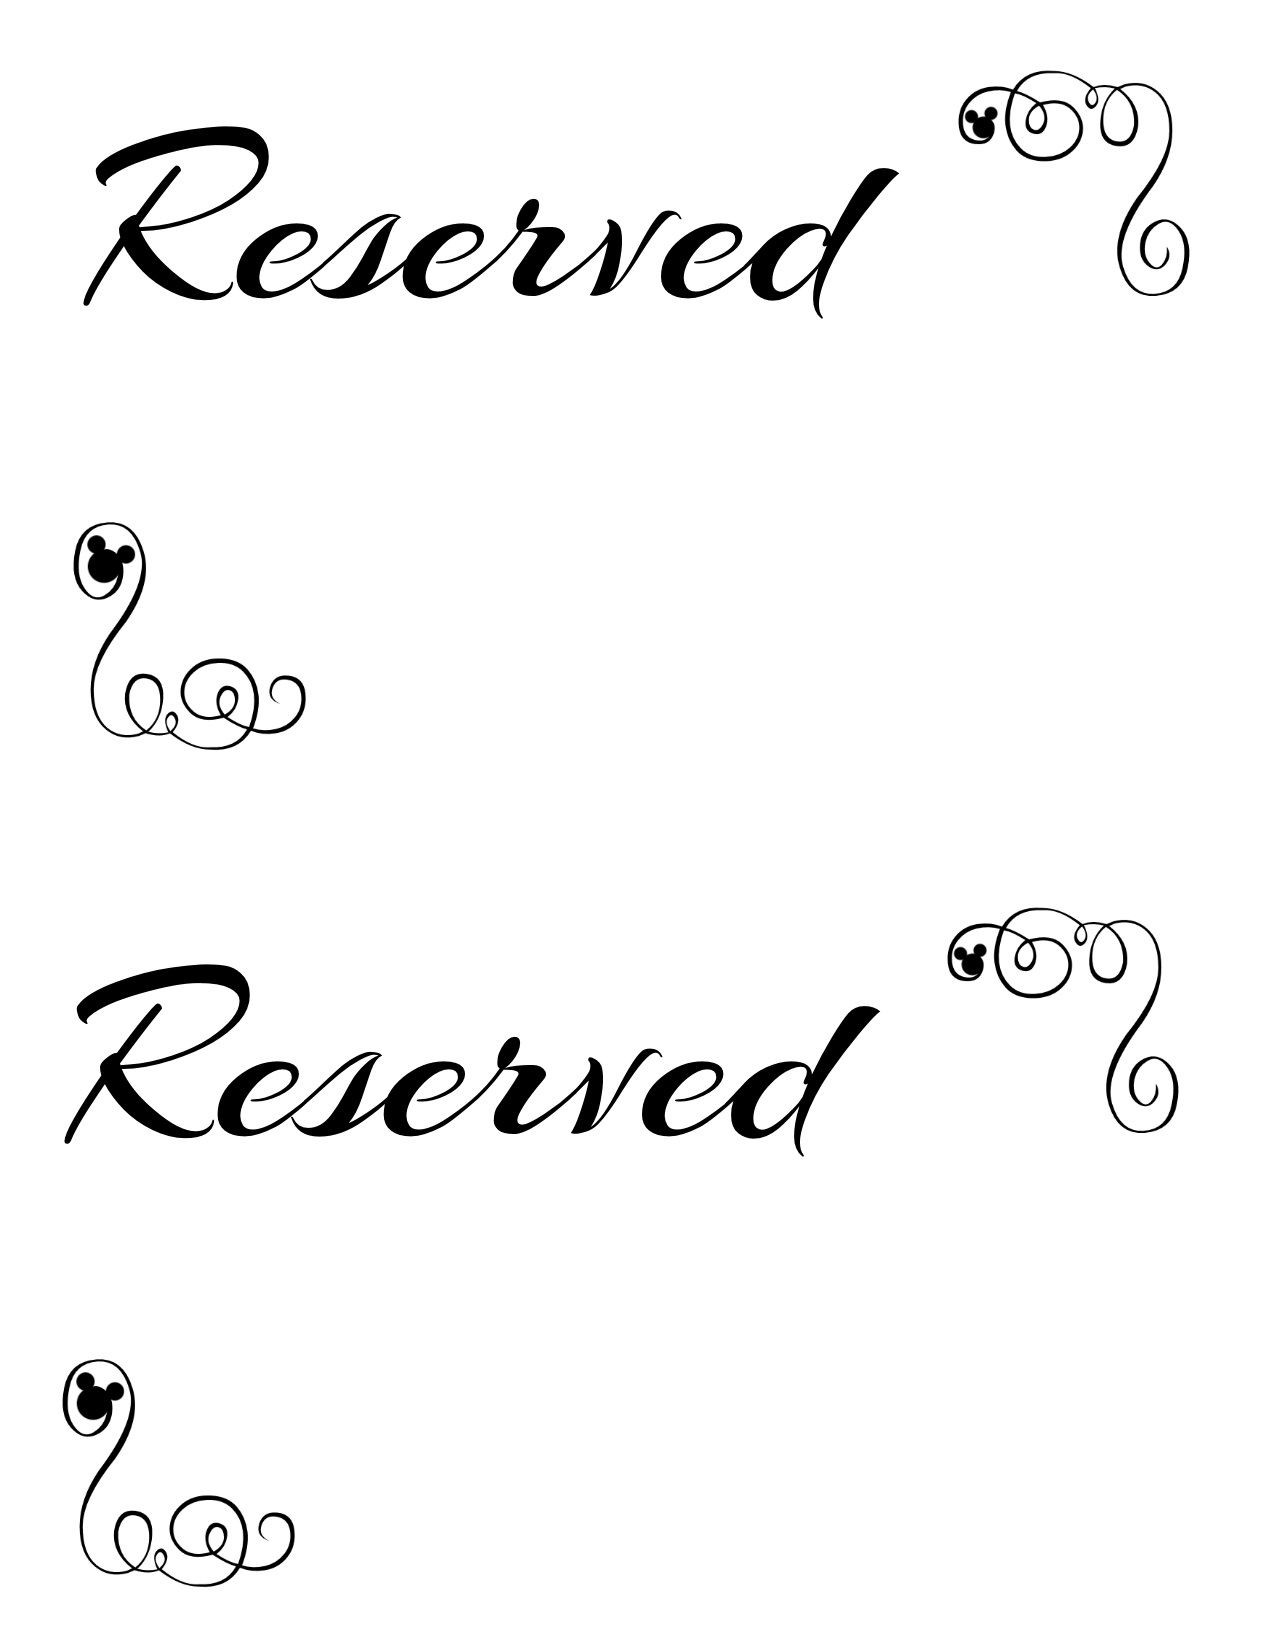 Free Printable Reserved Seating Signs For Your Wedding Ceremony - Free Printable Welcome Sign Template